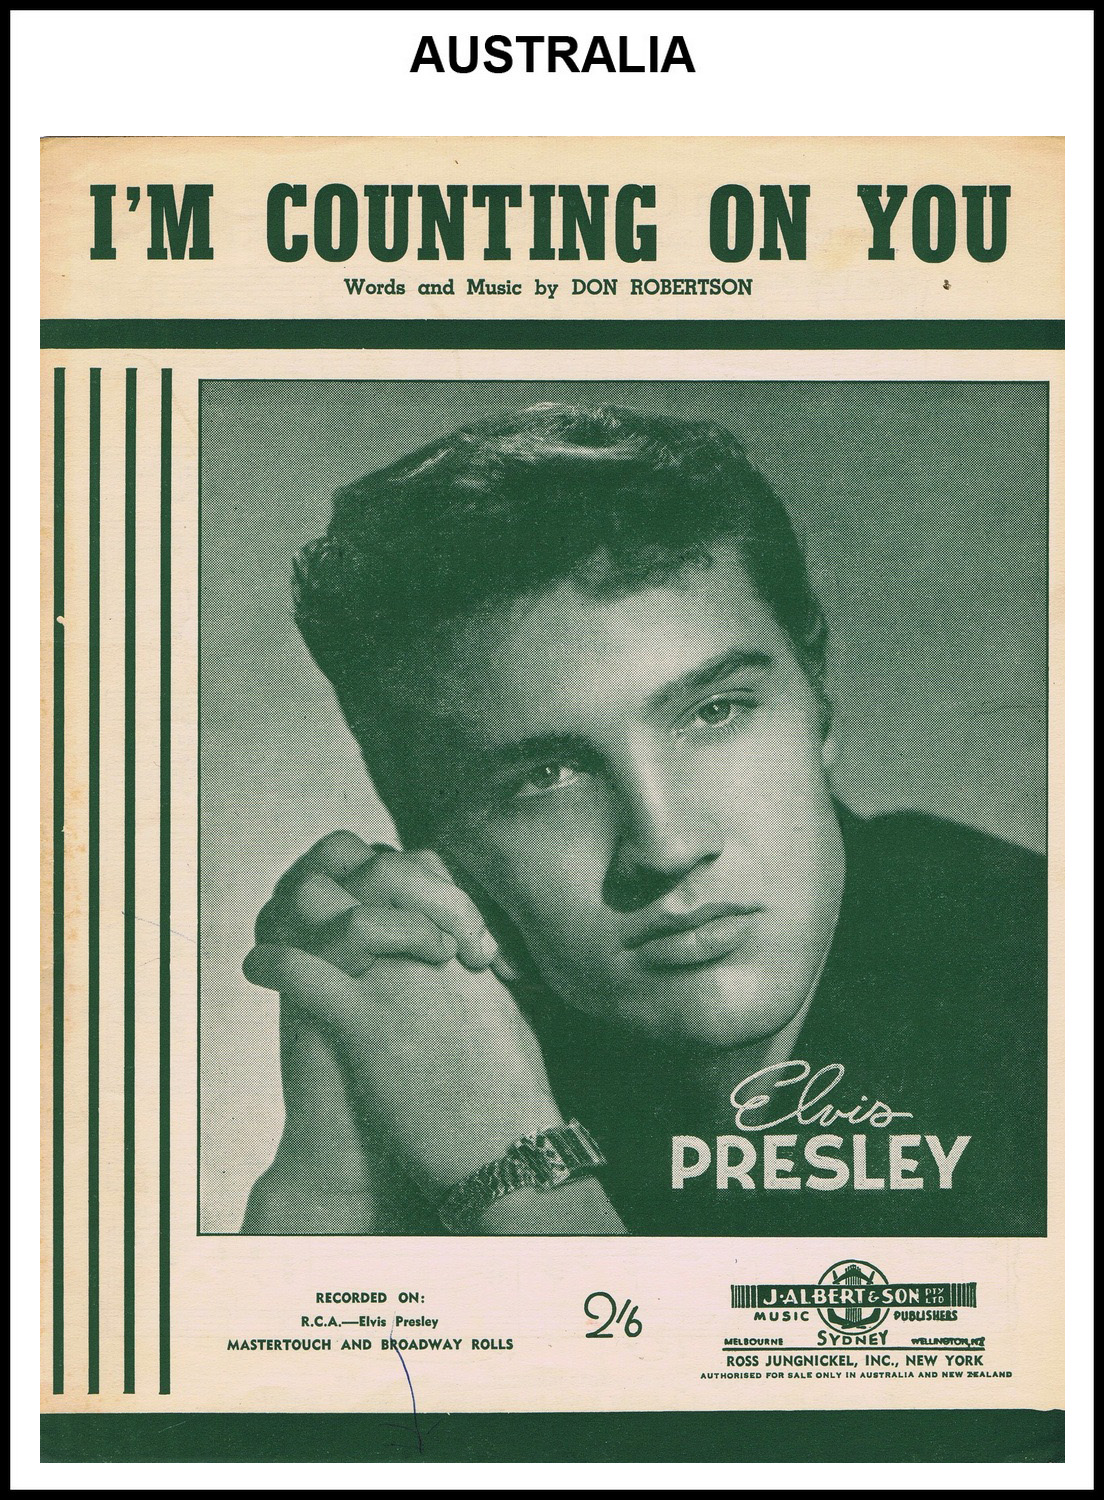 1956 - I'm Counting On You (Australia) (CHRIS GILES COLLECTION)